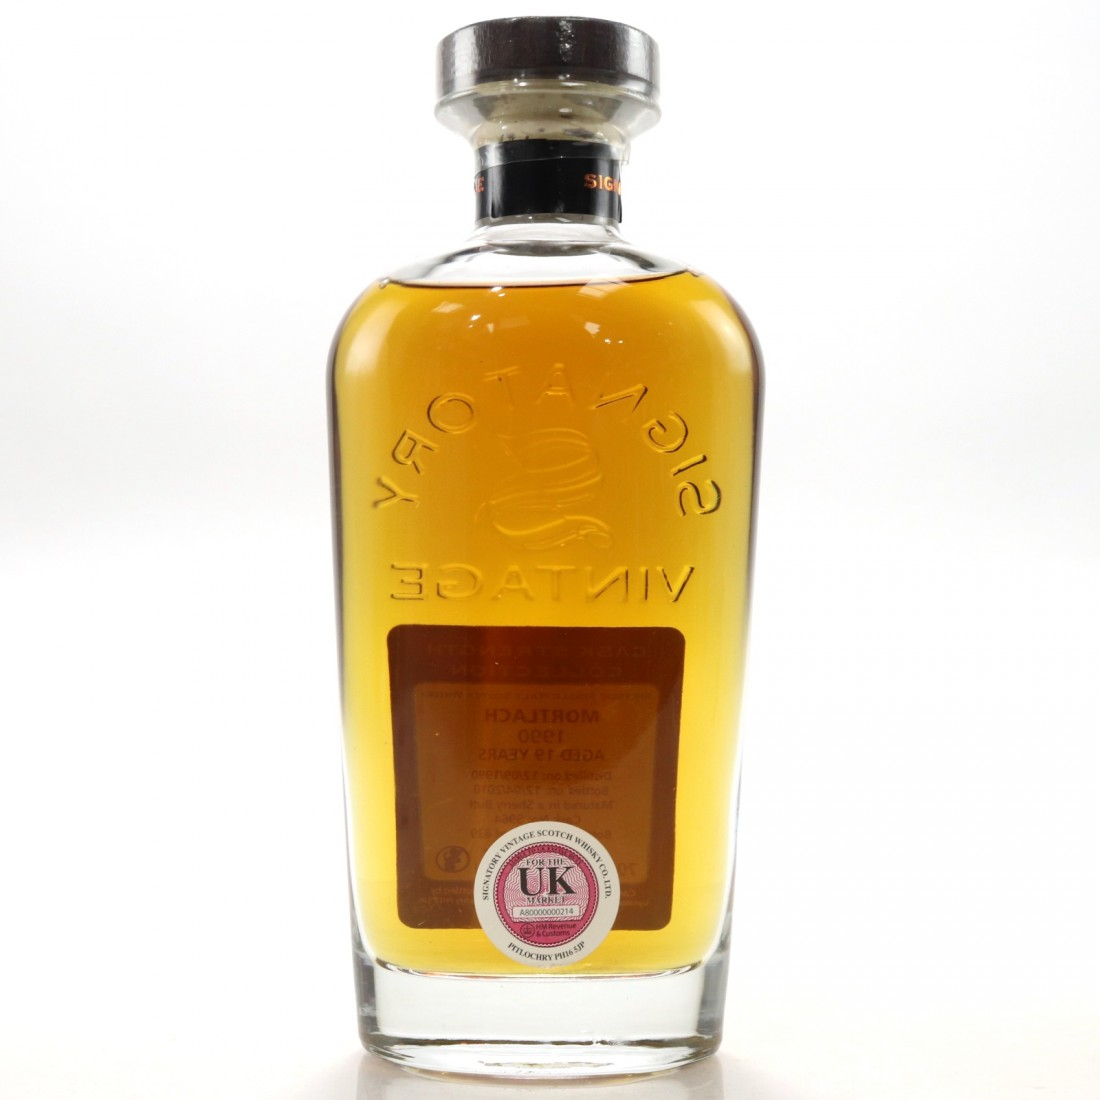 Mortlach 1990 Signatory Vintage 19 Year Old Cask Strength